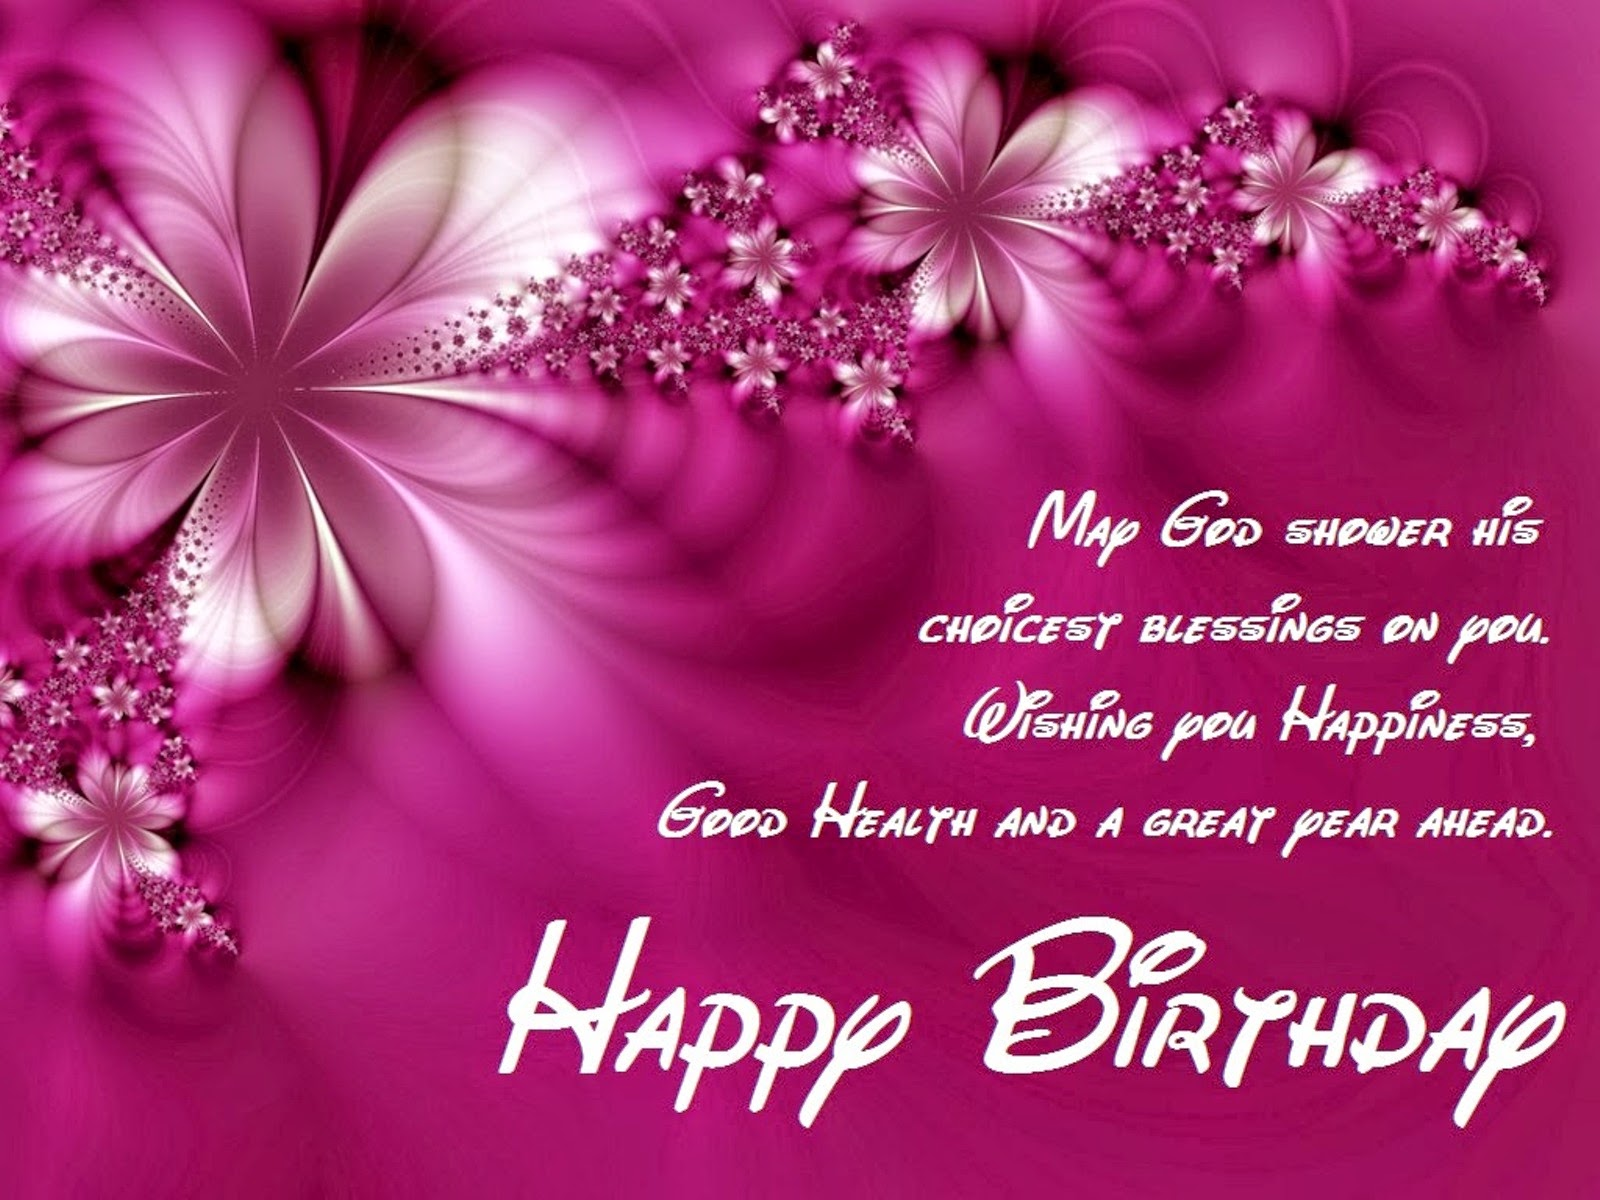 birthday wishes wallpapers free download ; Happy-Birthday-wishes-hd-wallpapers